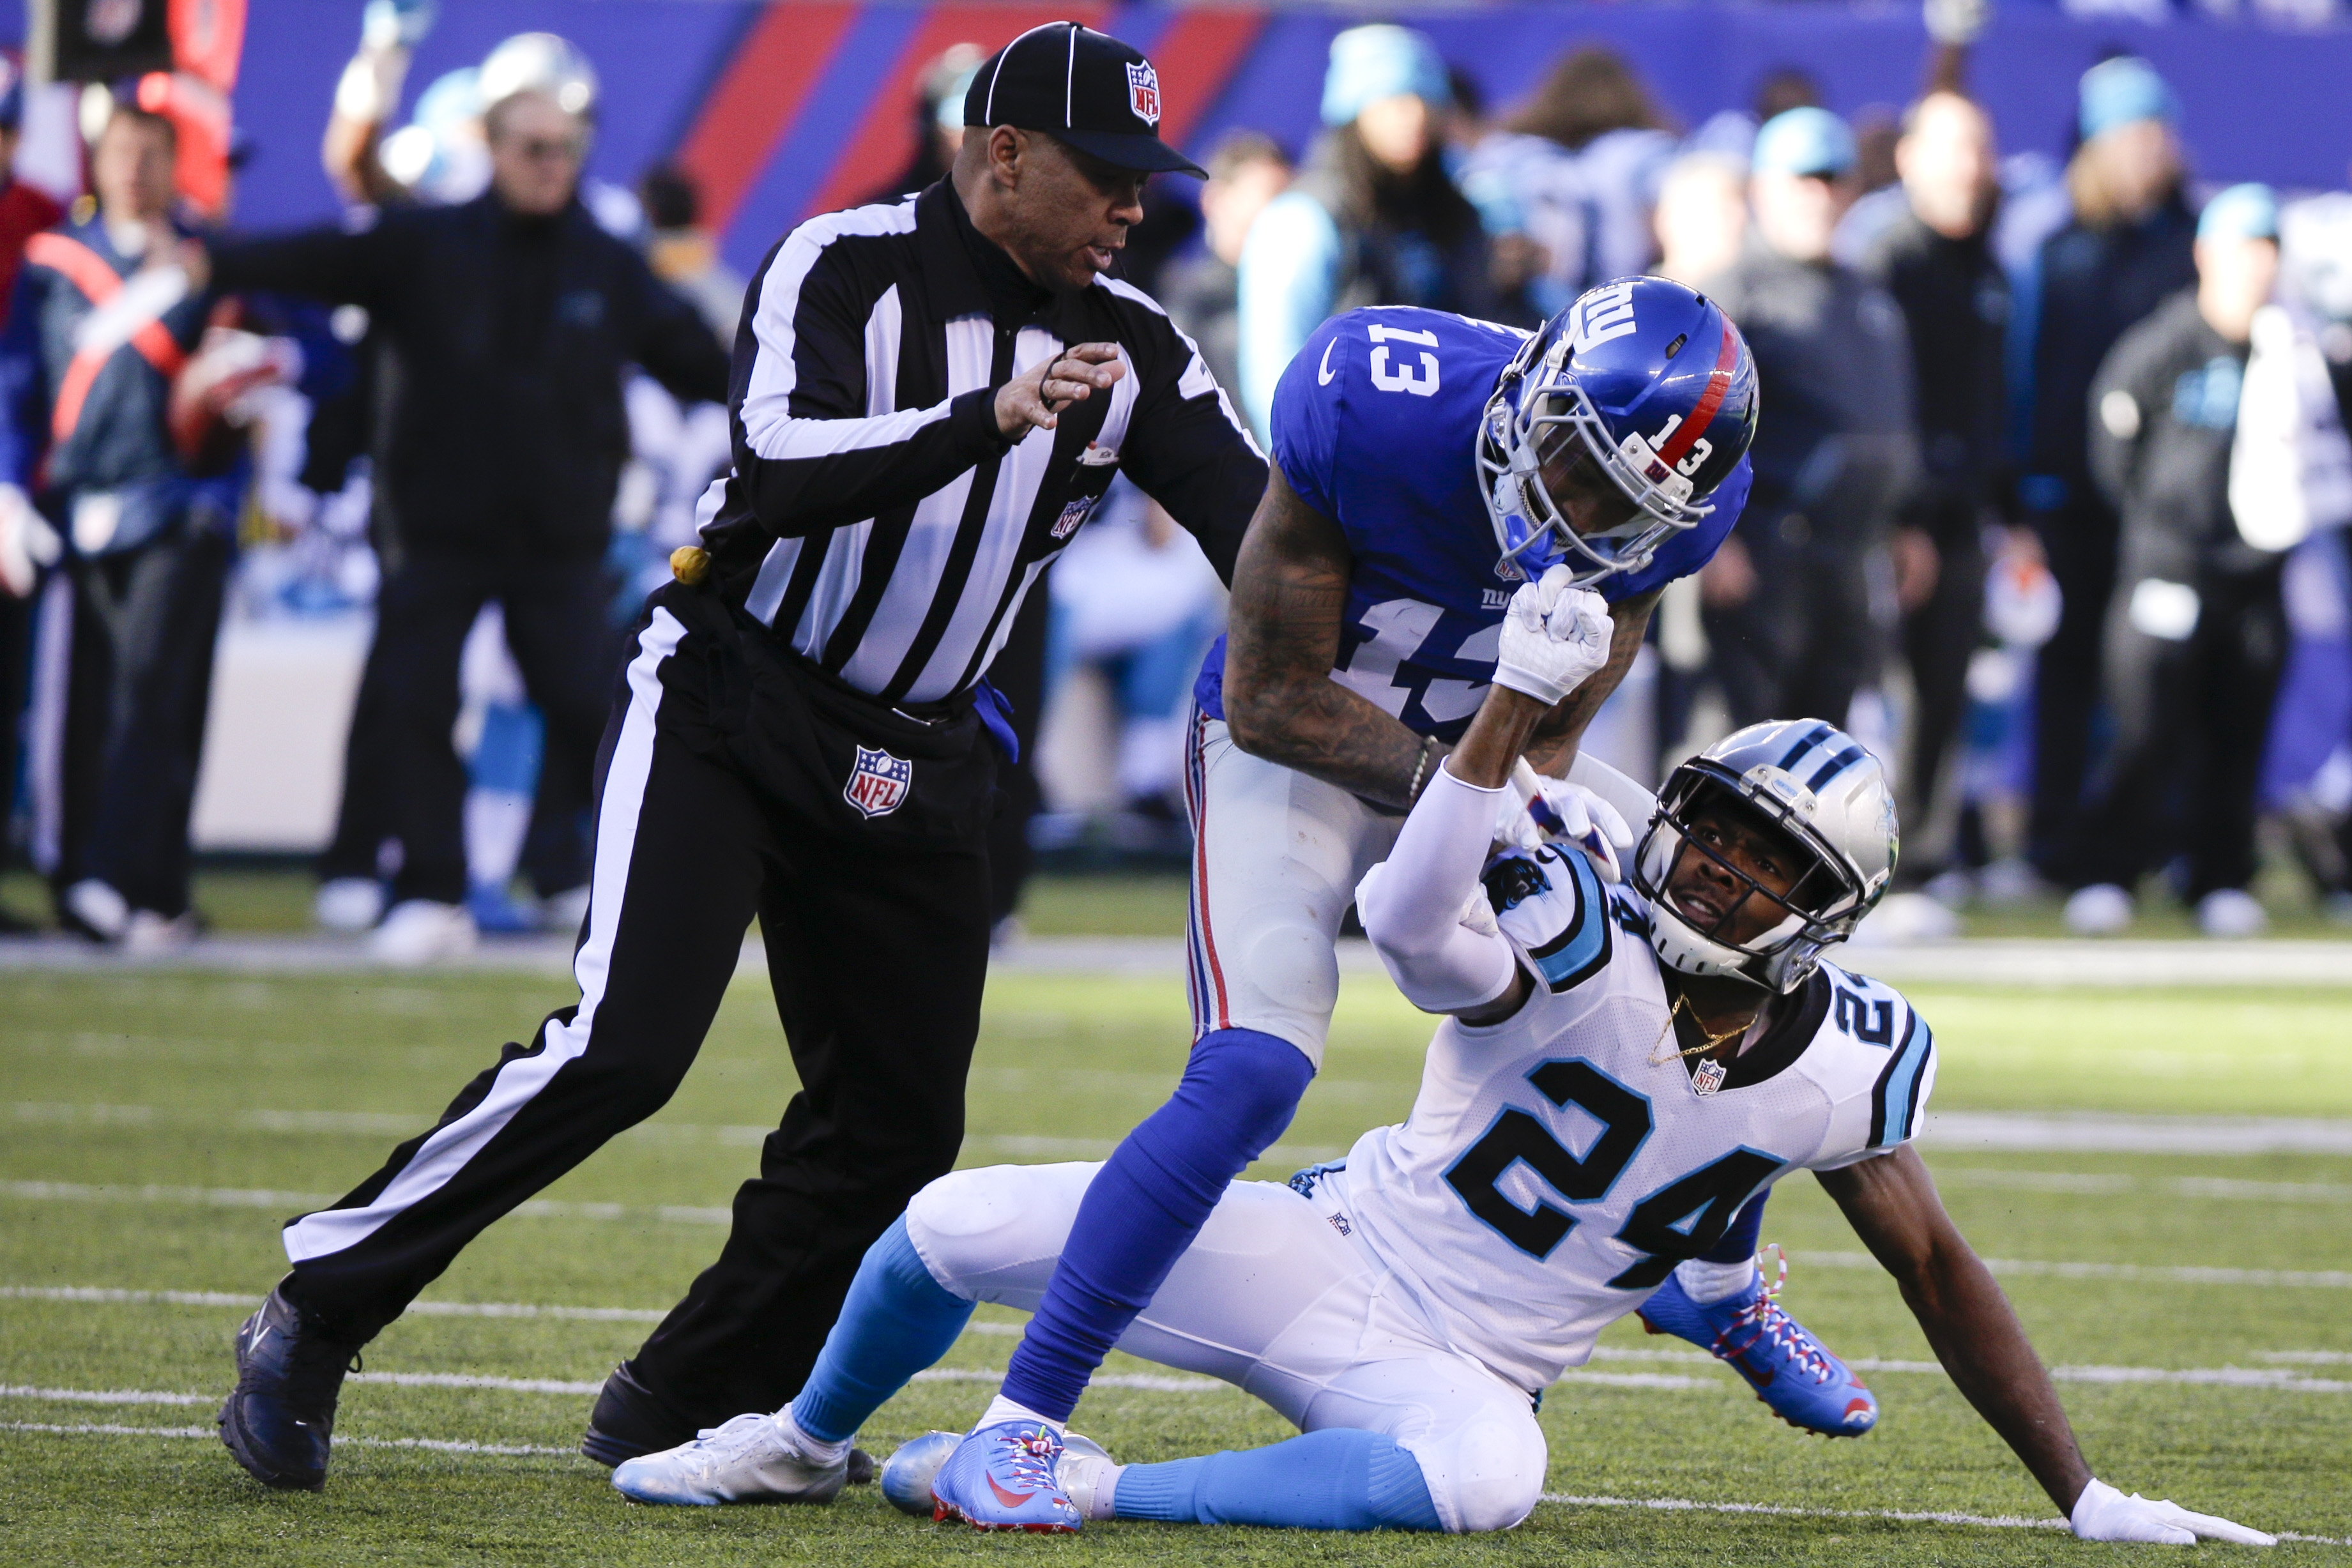 A referee, left, separates New York Giants wide receiver Odell Beckham (13) and Carolina Panthers' Josh Norman (24) during the first half of an NFL football game Sunday, Dec. 20, 2015, in East Rutherford, N.J. (AP Photo/Julie Jacobson)